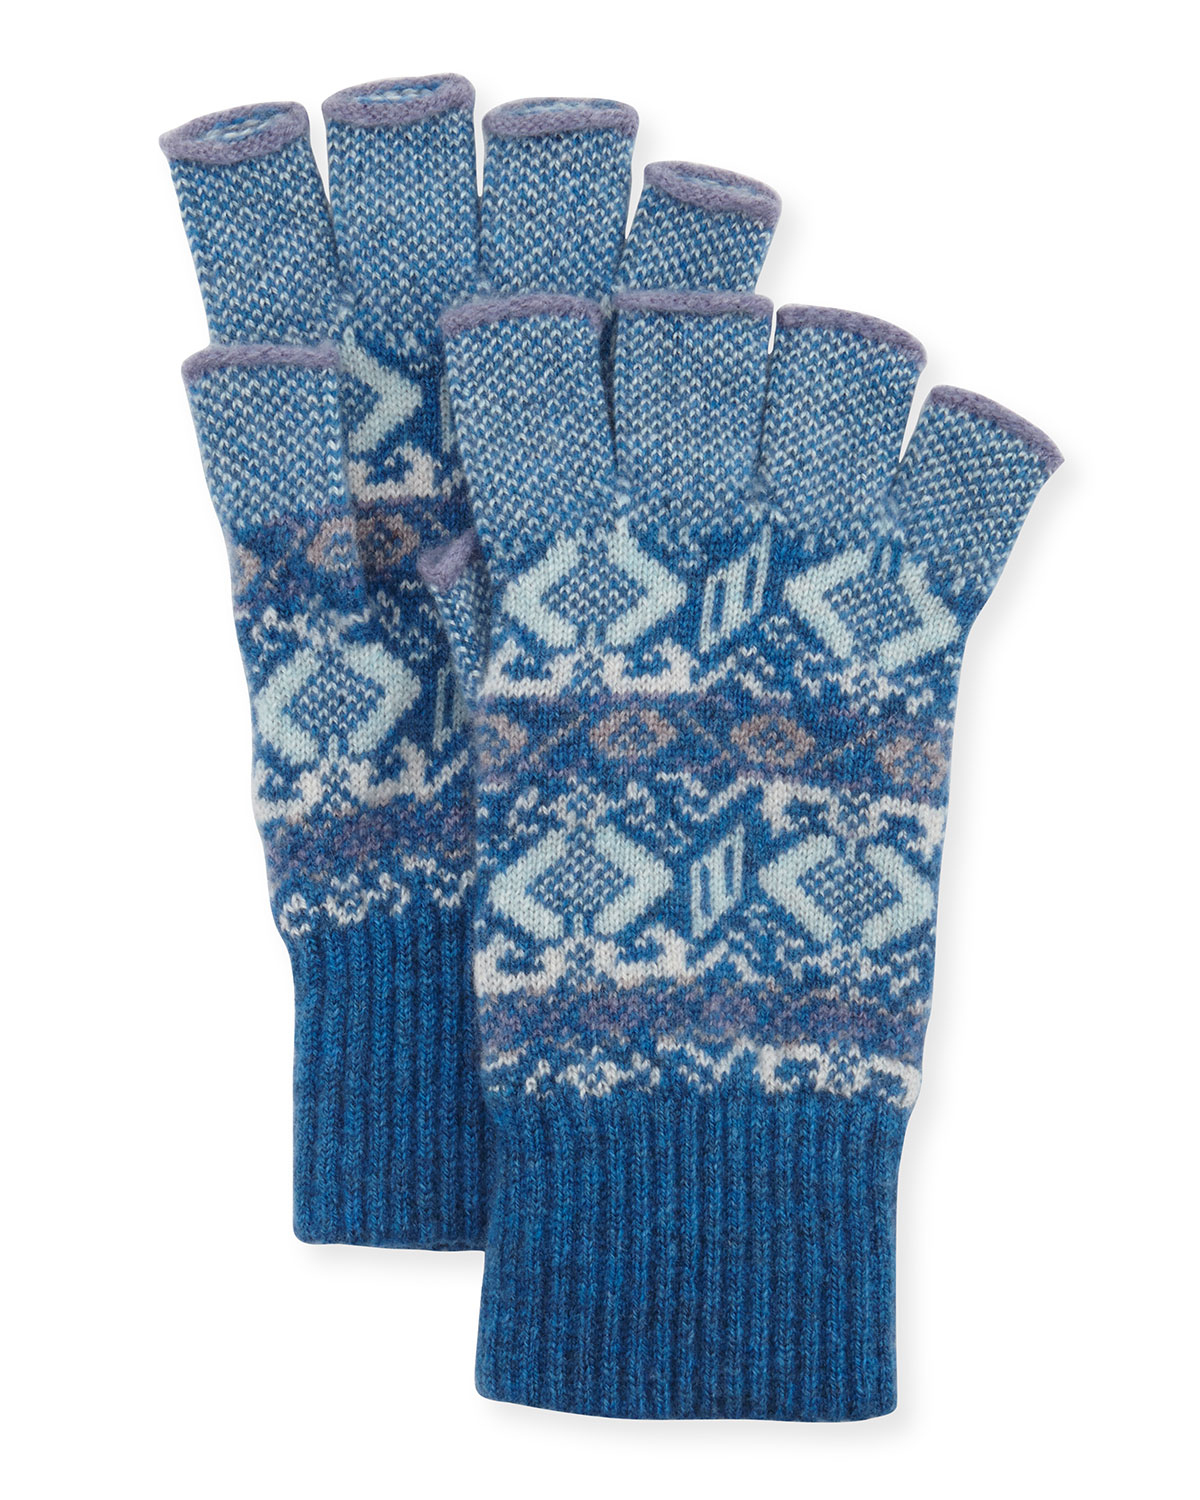 Cashmere Fingerless Gloves, Lapis - Brora